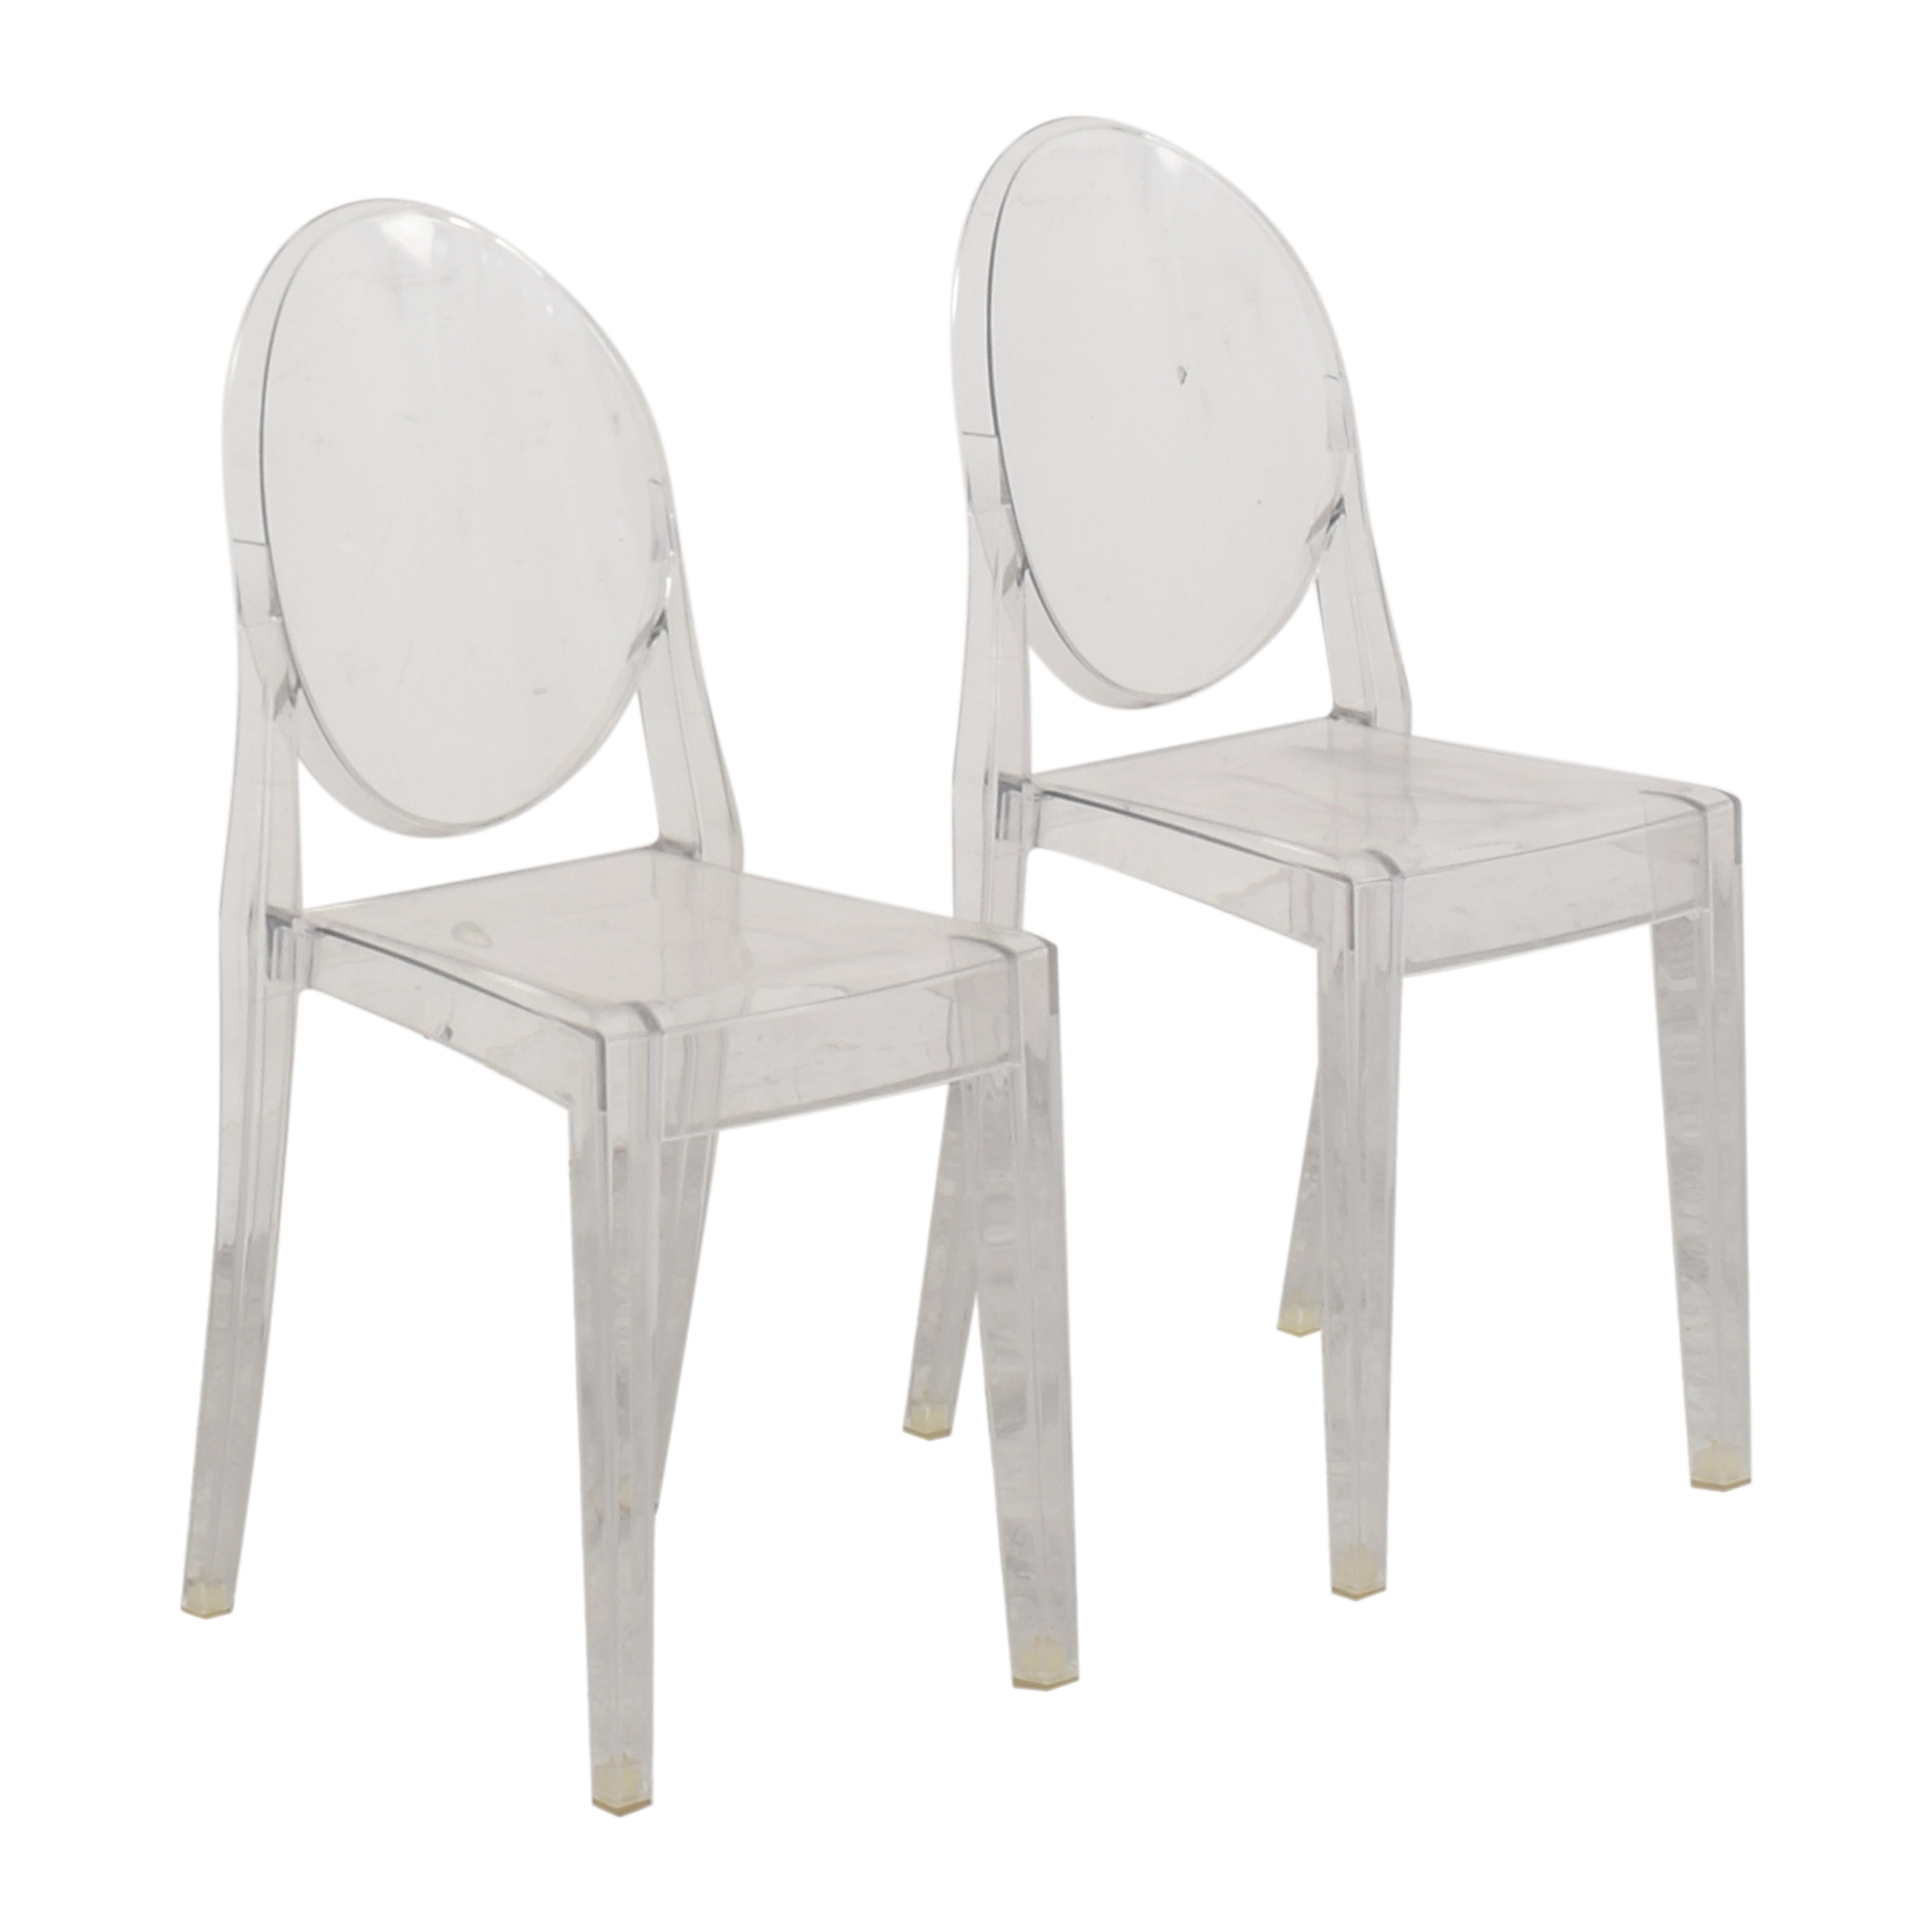 Philippe Starck for Kartell Victoria Ghost Chairs sale